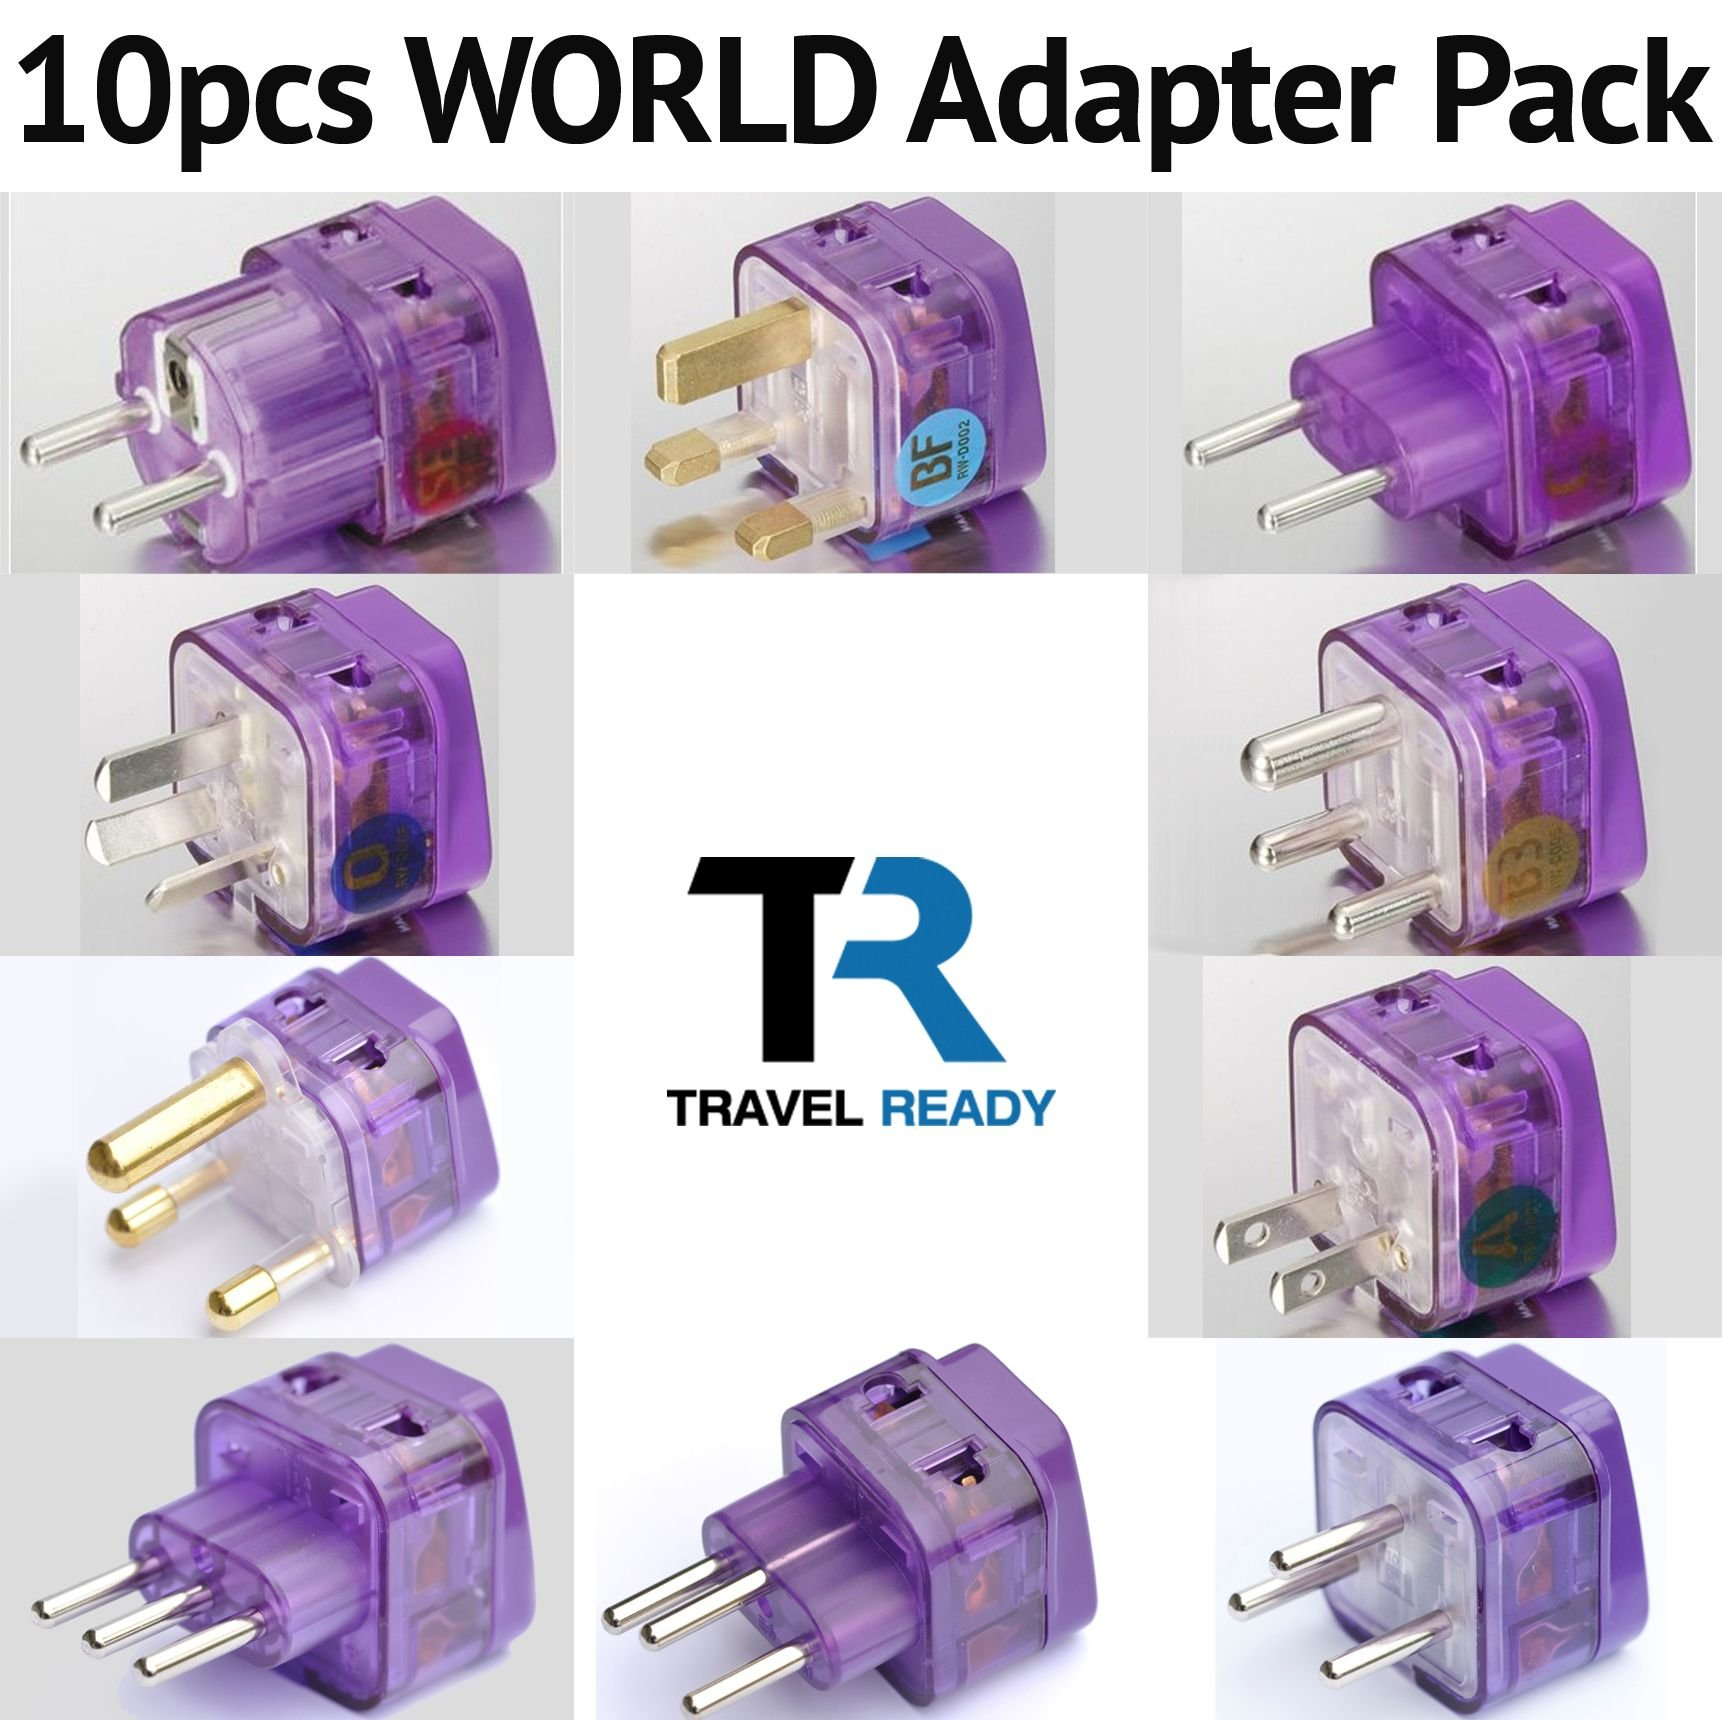 NEW! 10 Pieces HIGH QUALITY WORLD TRAVEL ADAPTER Pack for ALL countries in the WORLD; EUROPE ASIA AFRICA AUSTRALIA SOUTH and N. AMERICA MIDDLE EAST / WITH DUAL PLUG-IN PORTS AND SURGE PROTECTORS